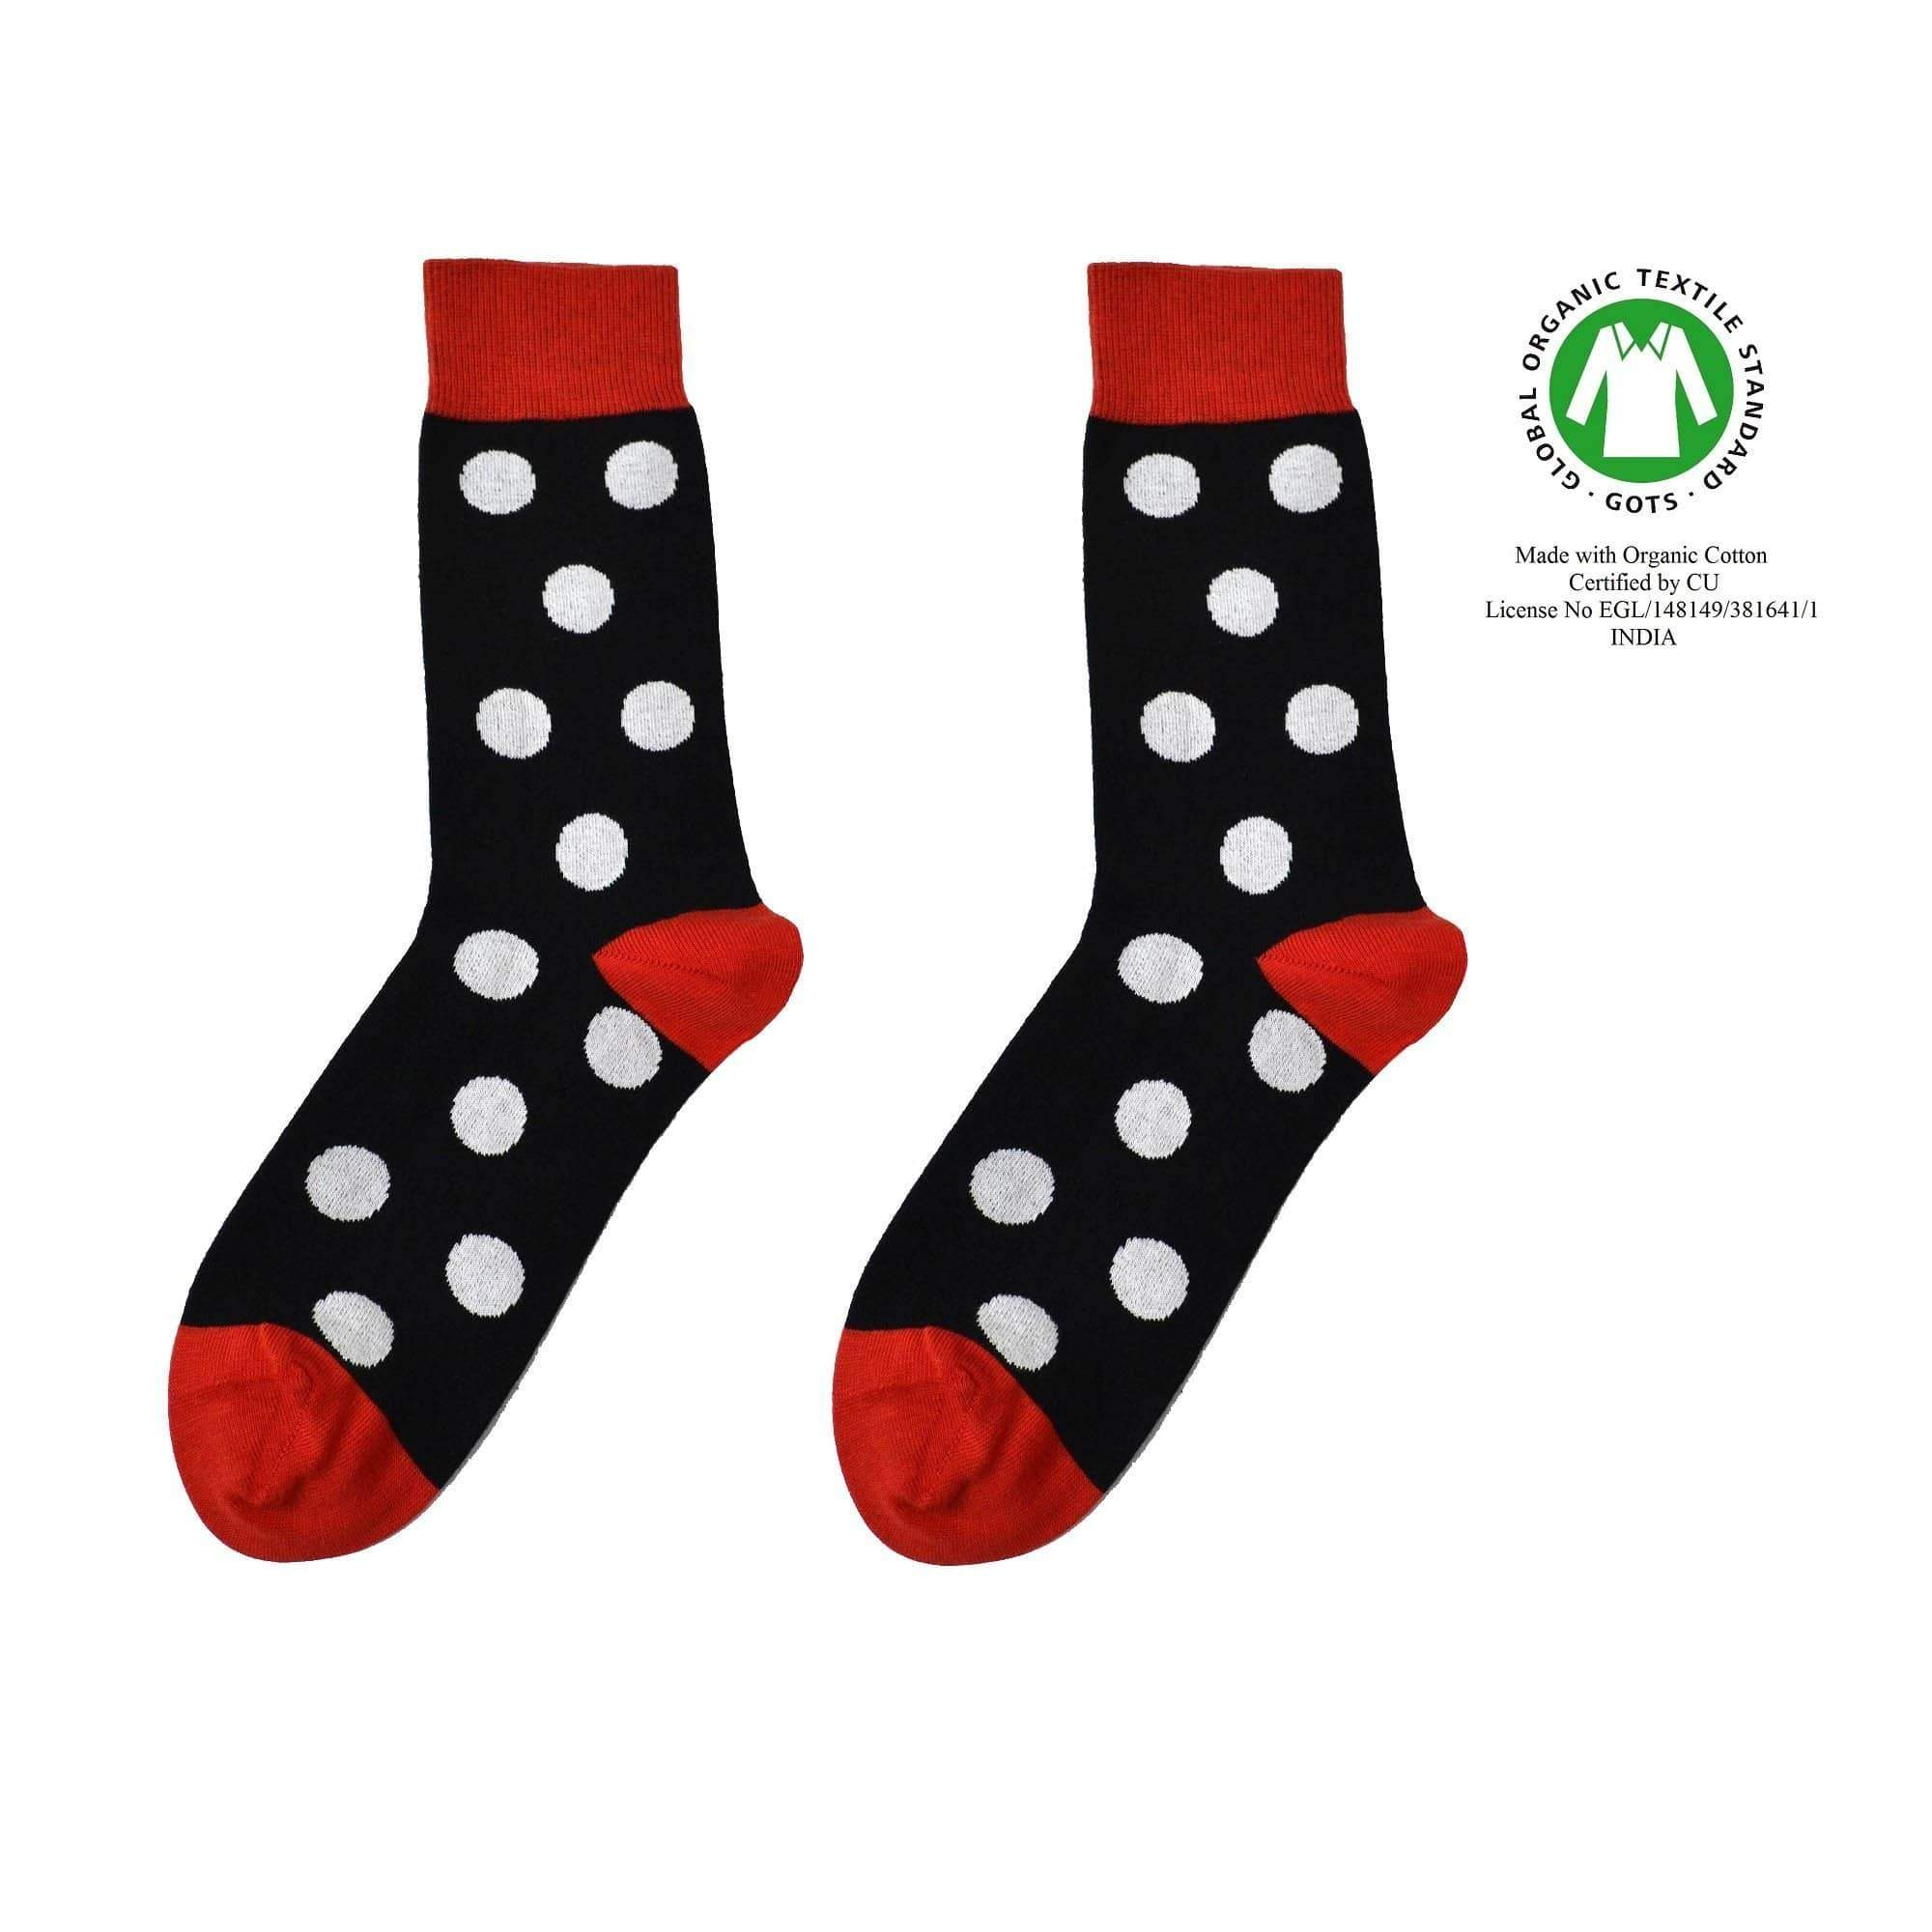 Organic Socks of Sweden sock Åberg Socks. Organic Cotton. sustainable fashion ethical fashion